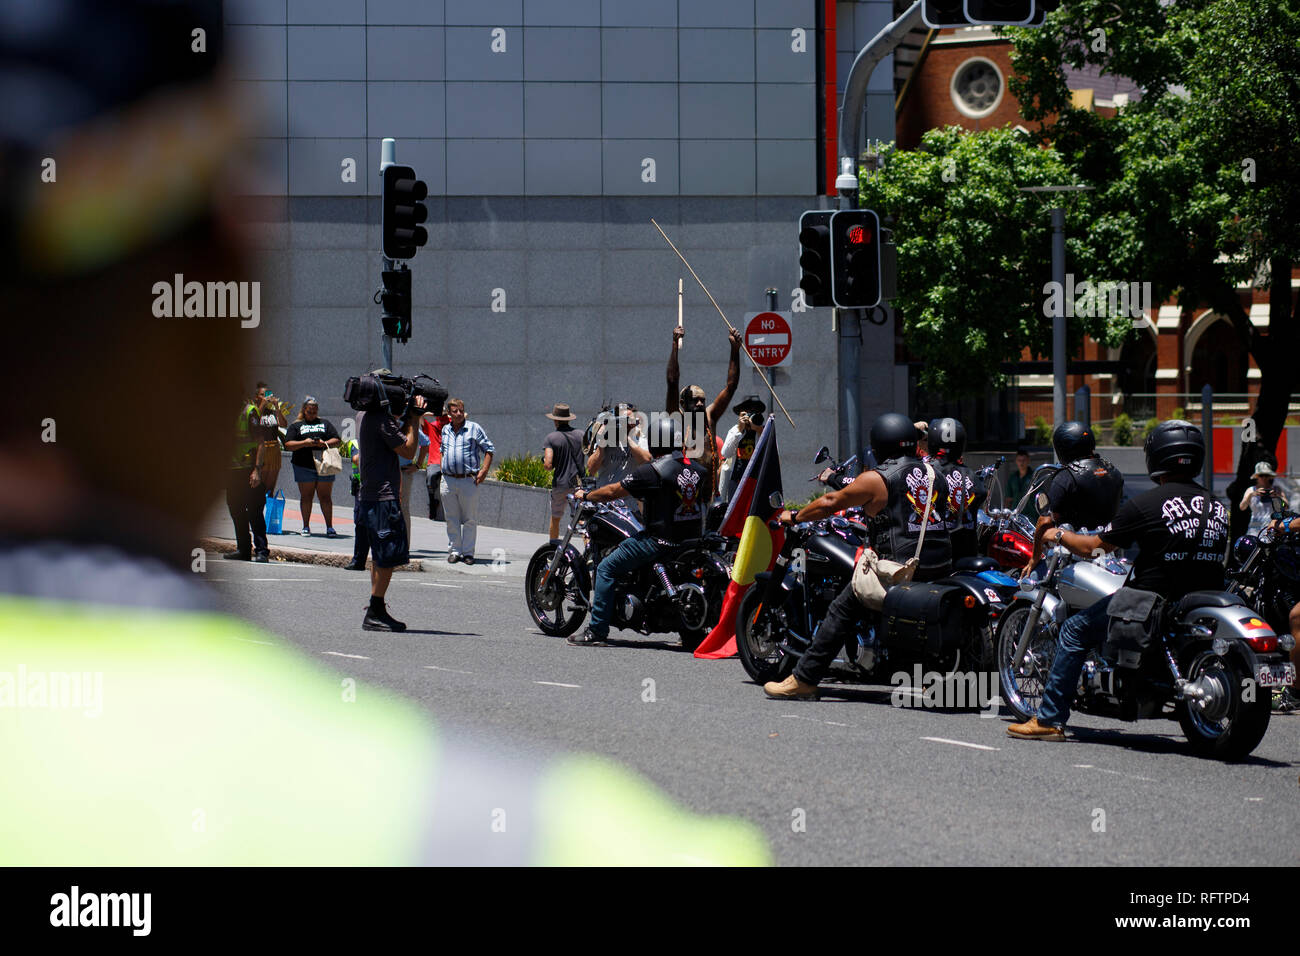 Protesters and the Indigenous Riders Club continue the march through the city at the rally on Roma Street. Indigenous protester Kamailie can be seen raising a spear among the crowd.  On the 26th of January, many Australians celebrate Australia day, but to many indigenous Australian people, it is a day synonymous with decades of systematic abuse and genocide. Several thousand protesters took the streets in Brisbane (known as Meanjin by local indigenous people) to rally for sovereignty rights and date changes. - Stock Image